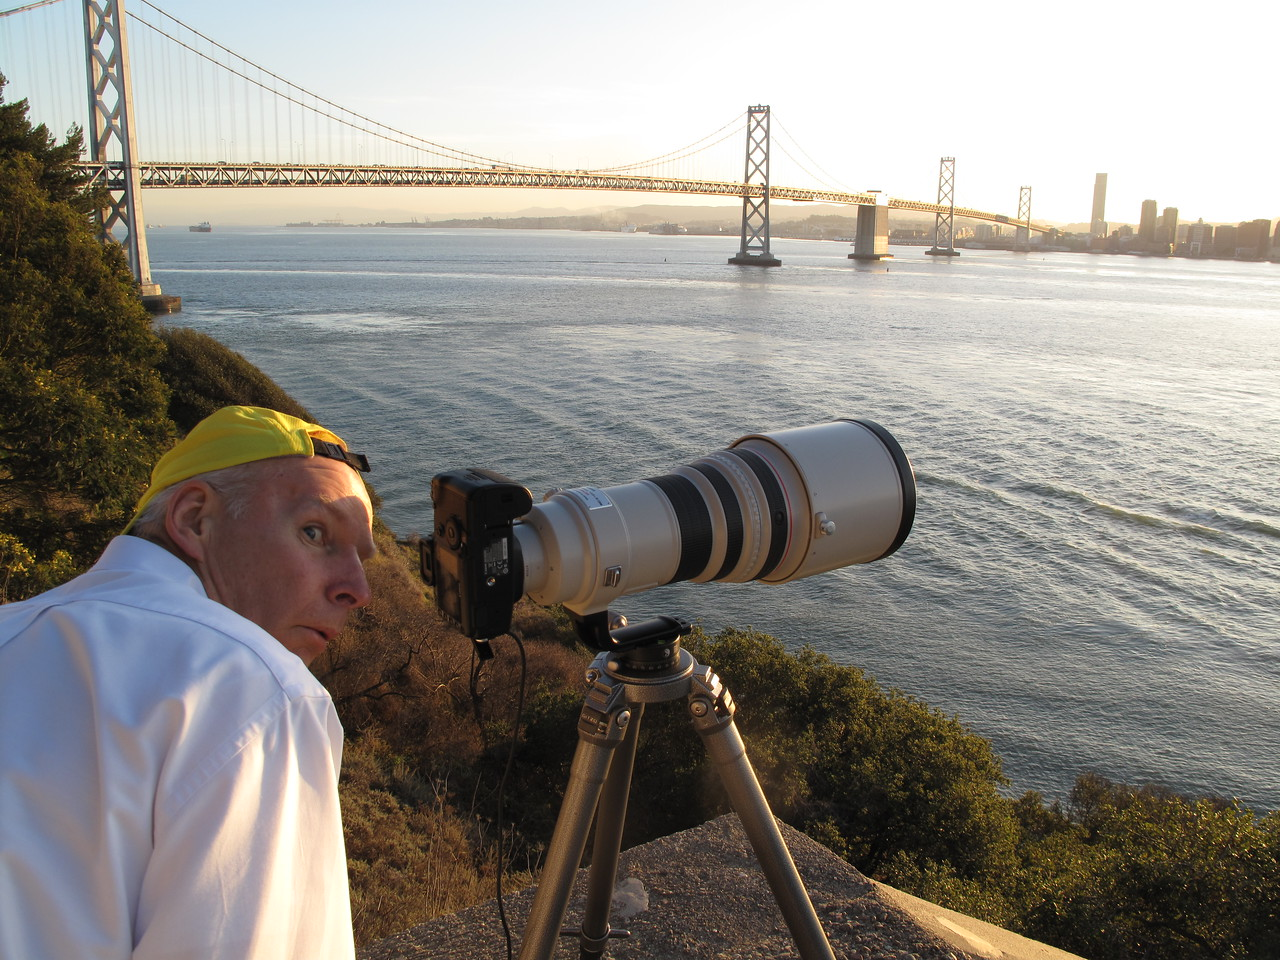 Shooting the San Francisco skyline with my 300mm